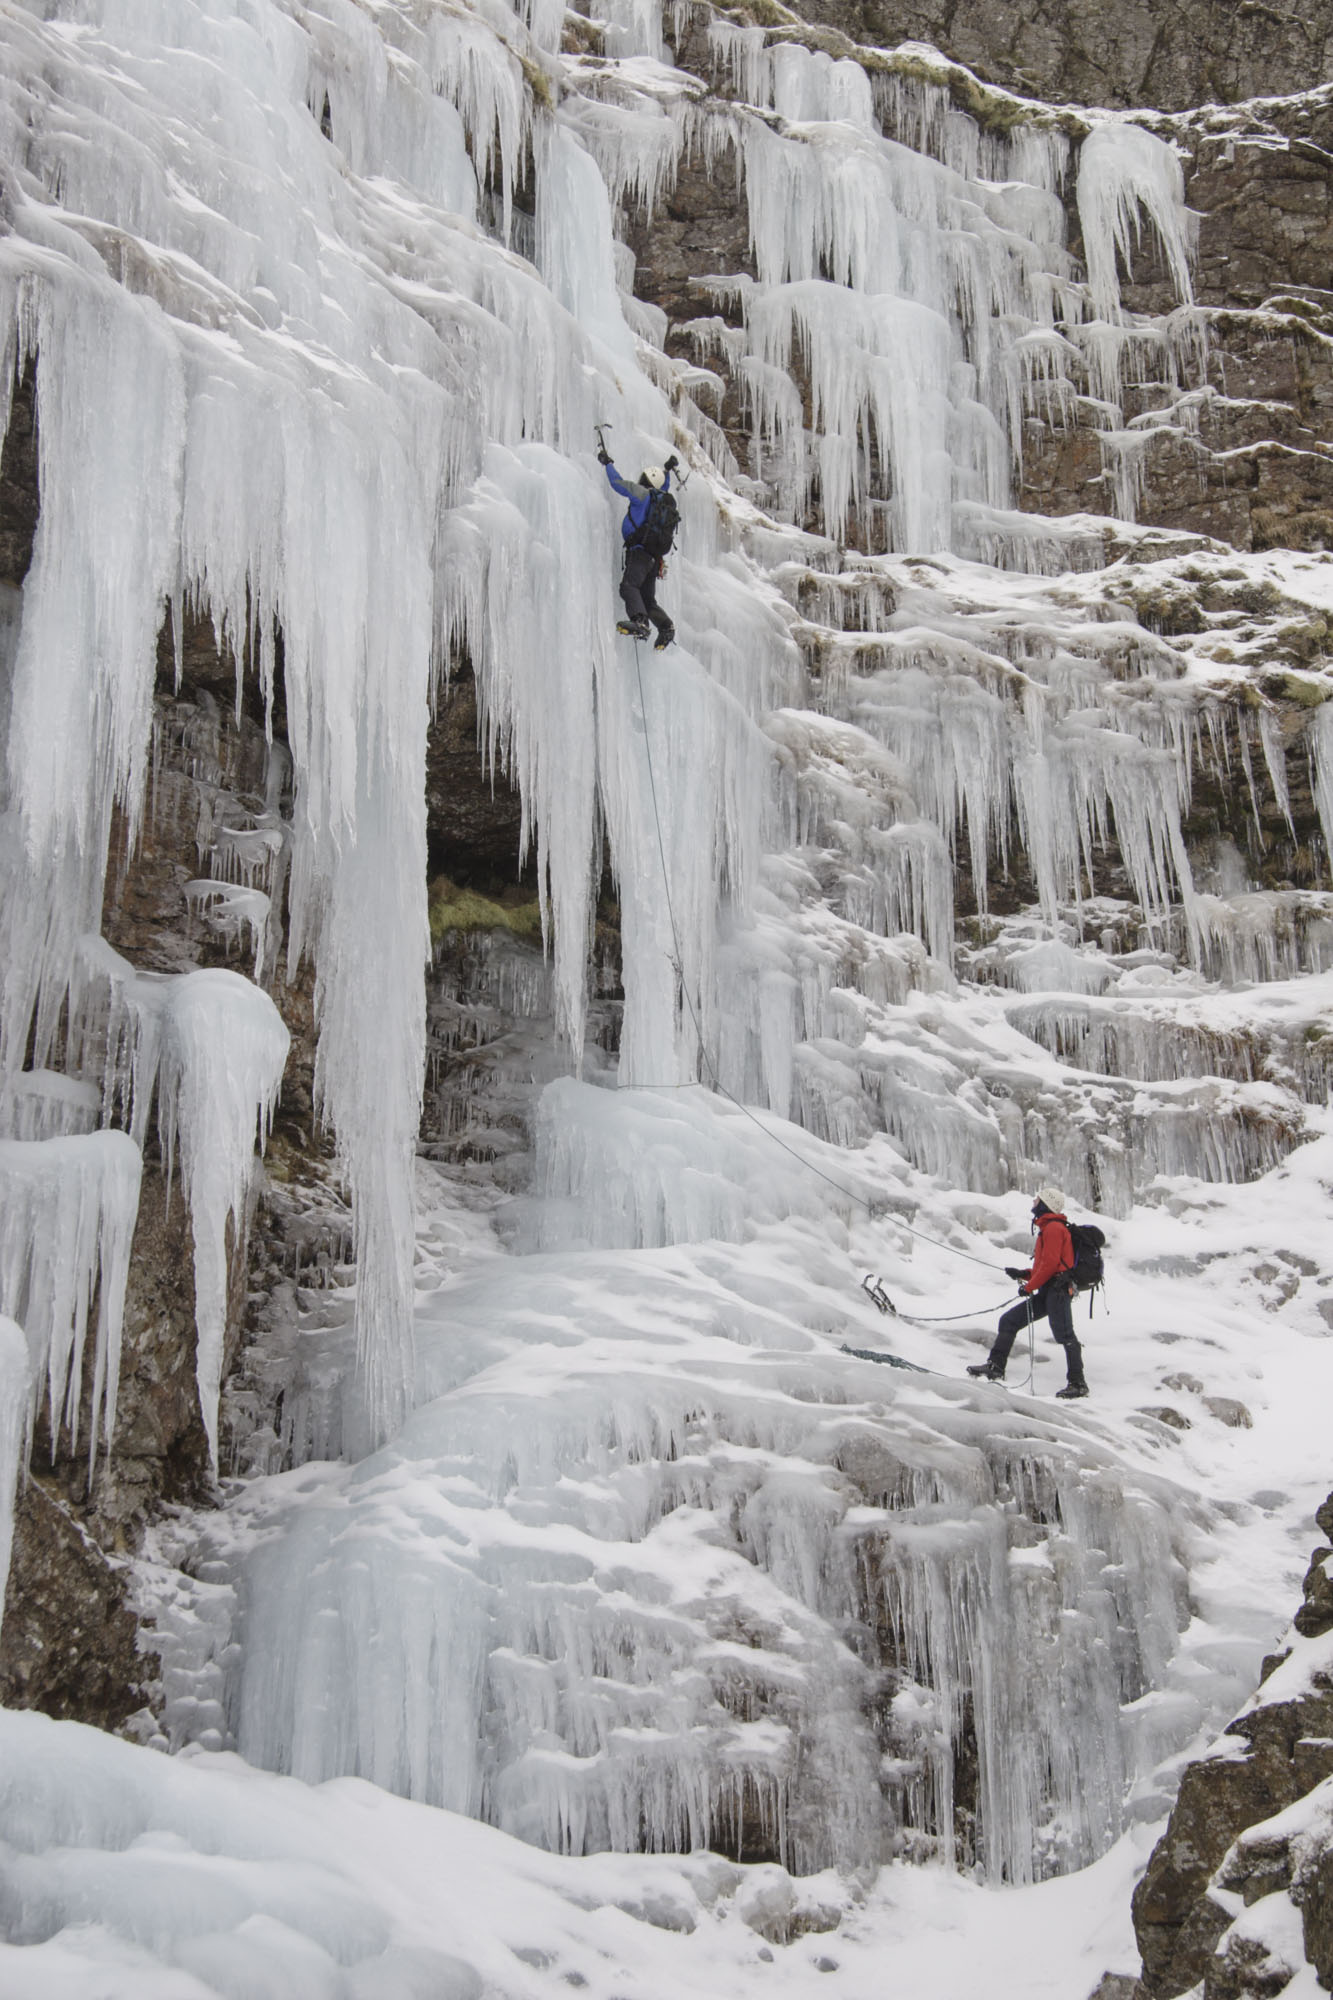 Exceptional conditions for ice climbing in the Lakes. This is Dove Crag on Grassmoor. Canon 20D, 24-105mm at 41mm, ISO 100, 1/100 sec at f/8, March 2005. © Stuart Holmes.